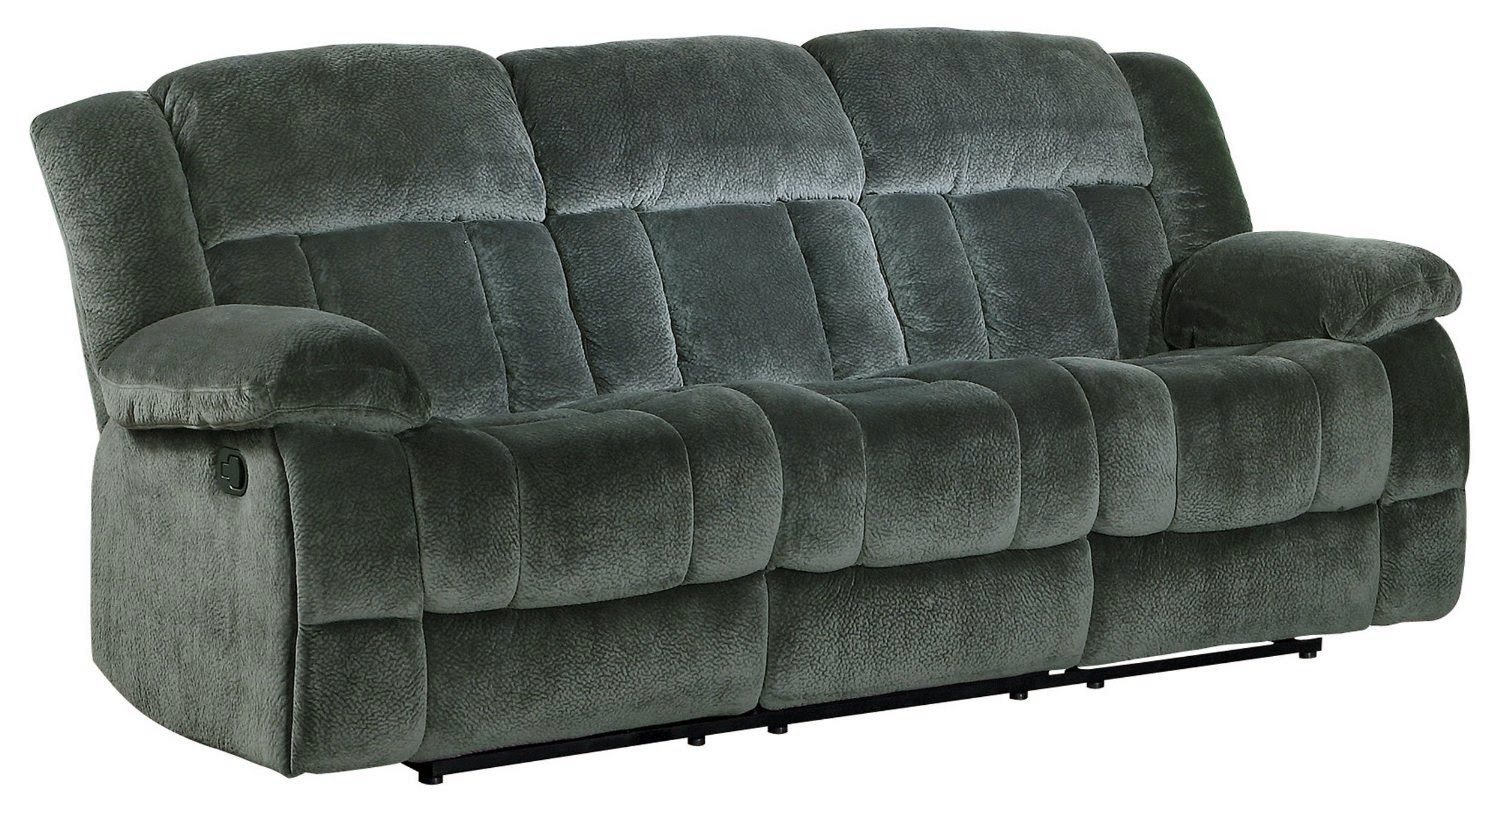 The Best Home Furnishings Reclining Sofa Reviews